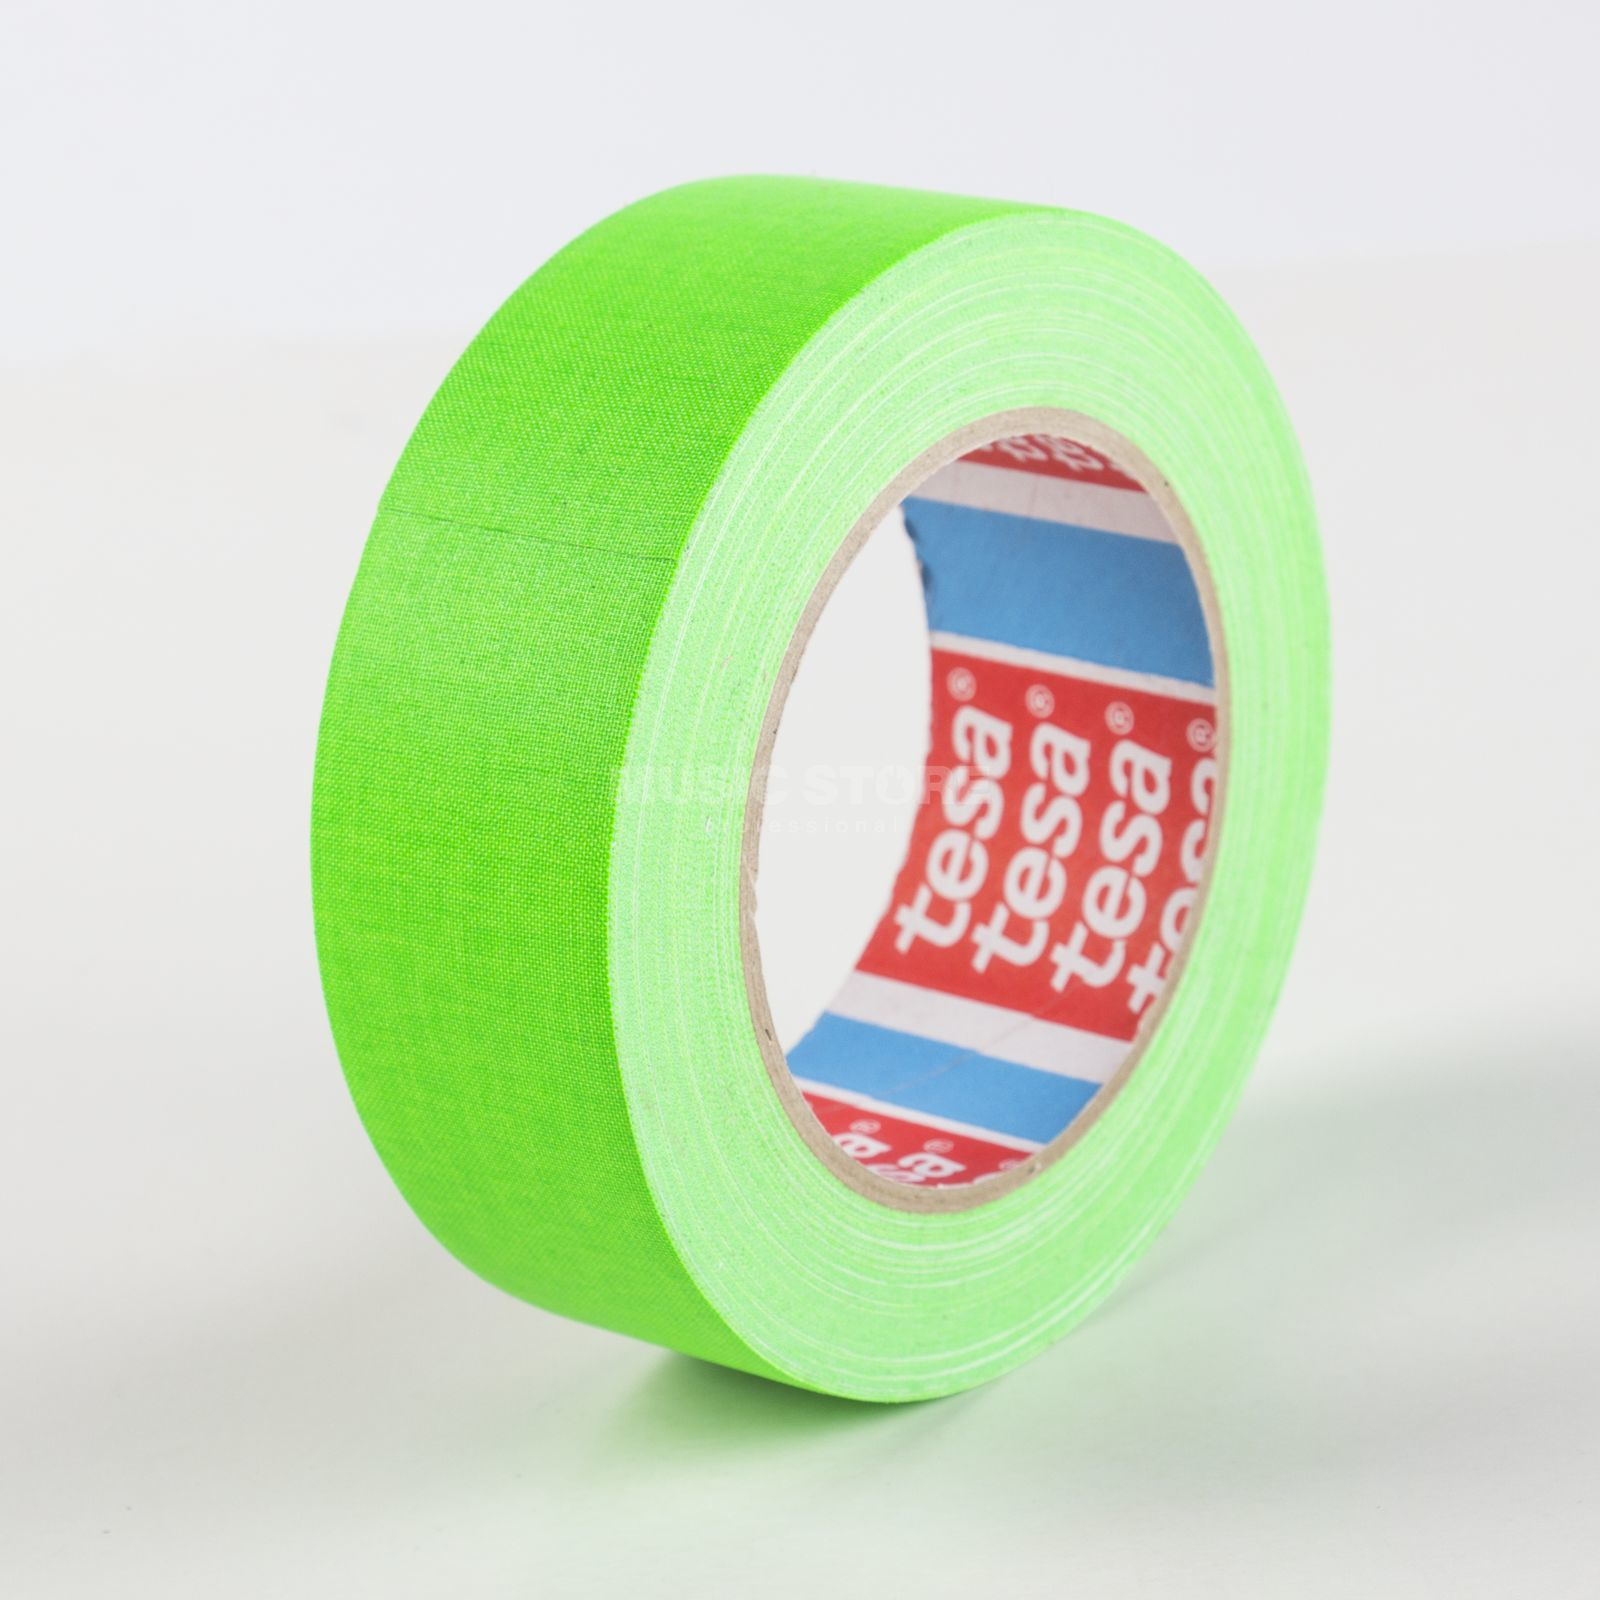 Tesa Highlight Gaffa Tape 4671 neongrün, 25m, 38mm Produktbild